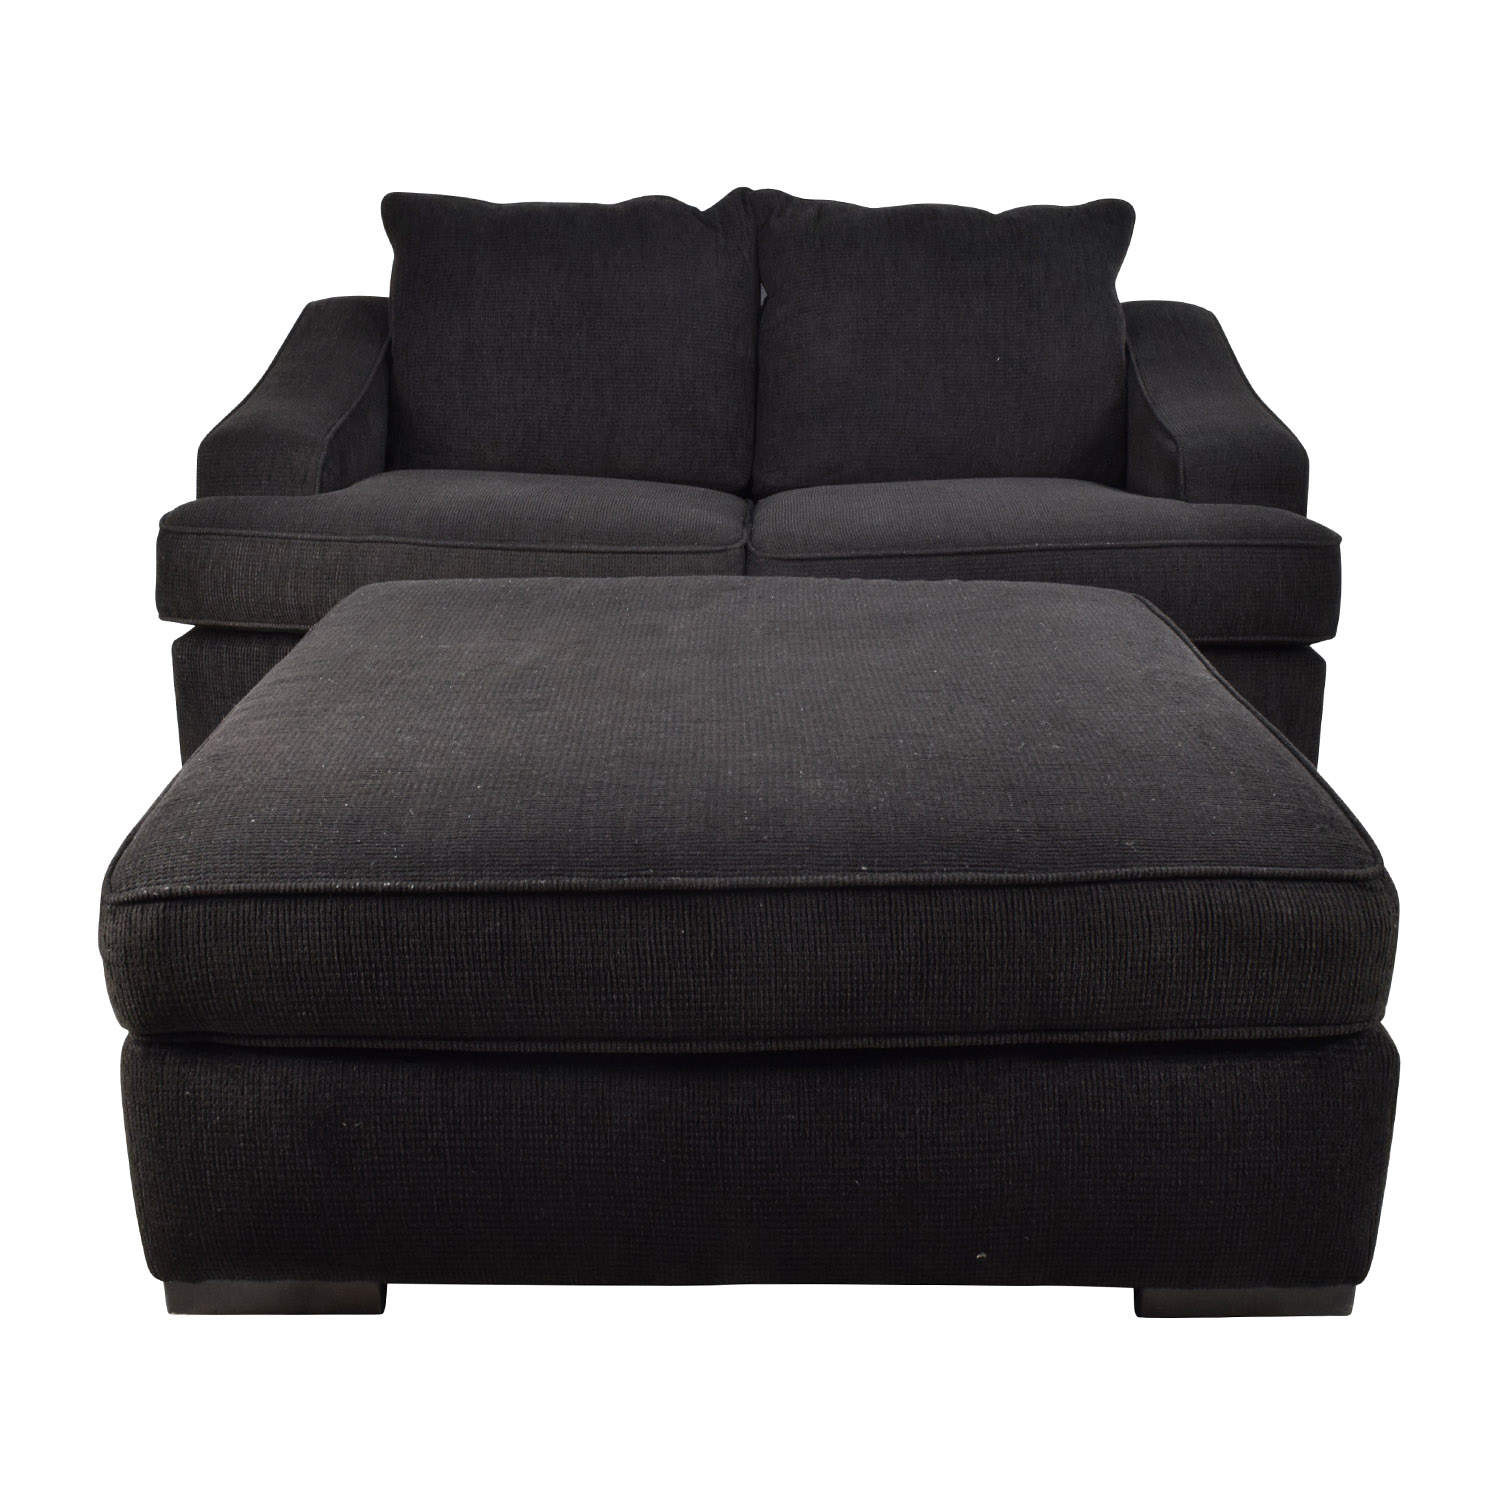 67% OFF - Black Cloth Loveseat and Matching Oversized ...